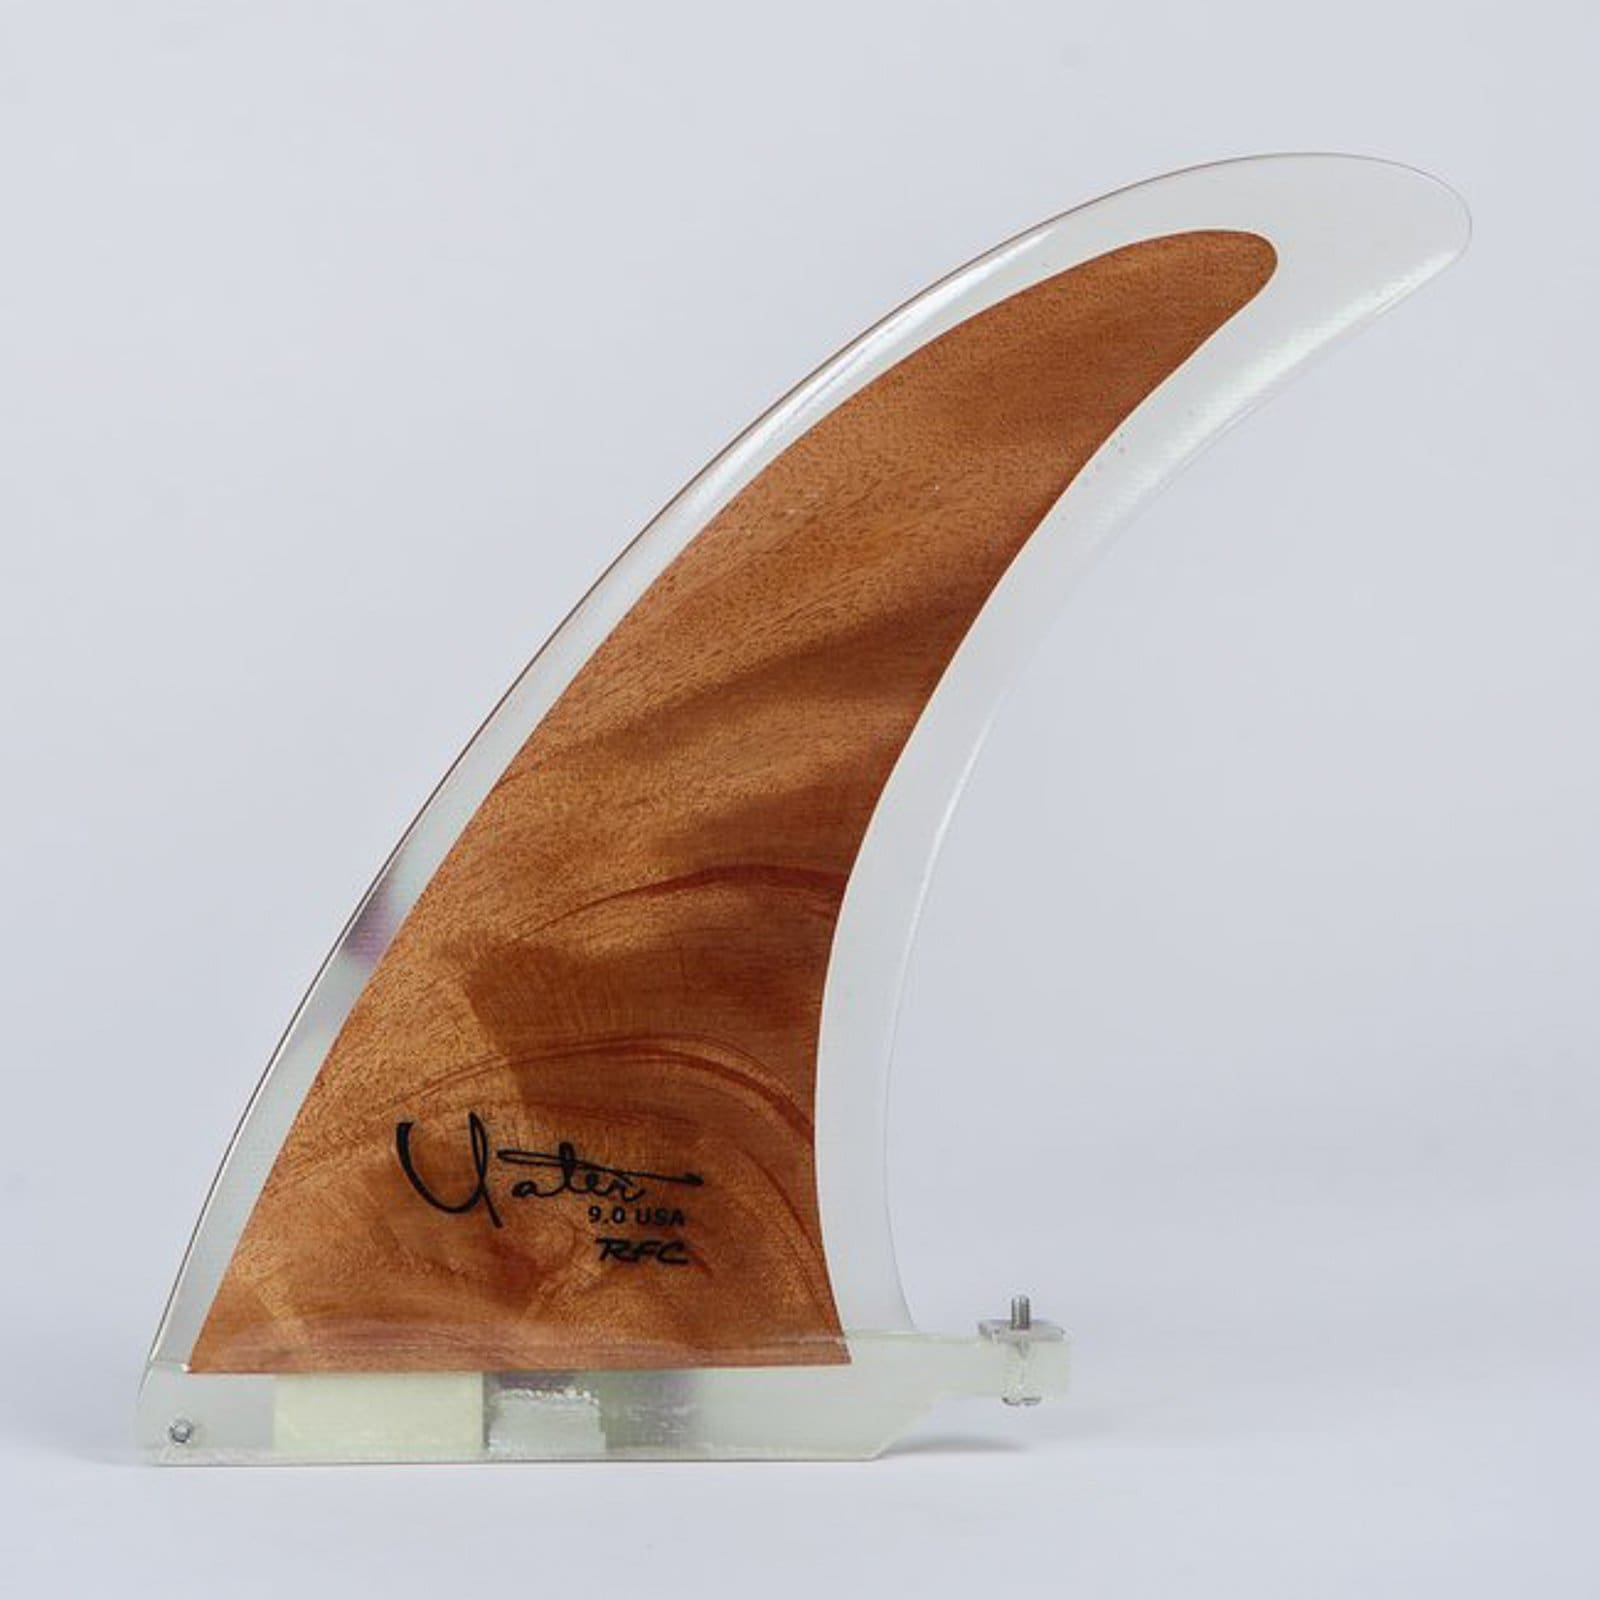 Rainbow Fin Company Yater Wood 9 - fins